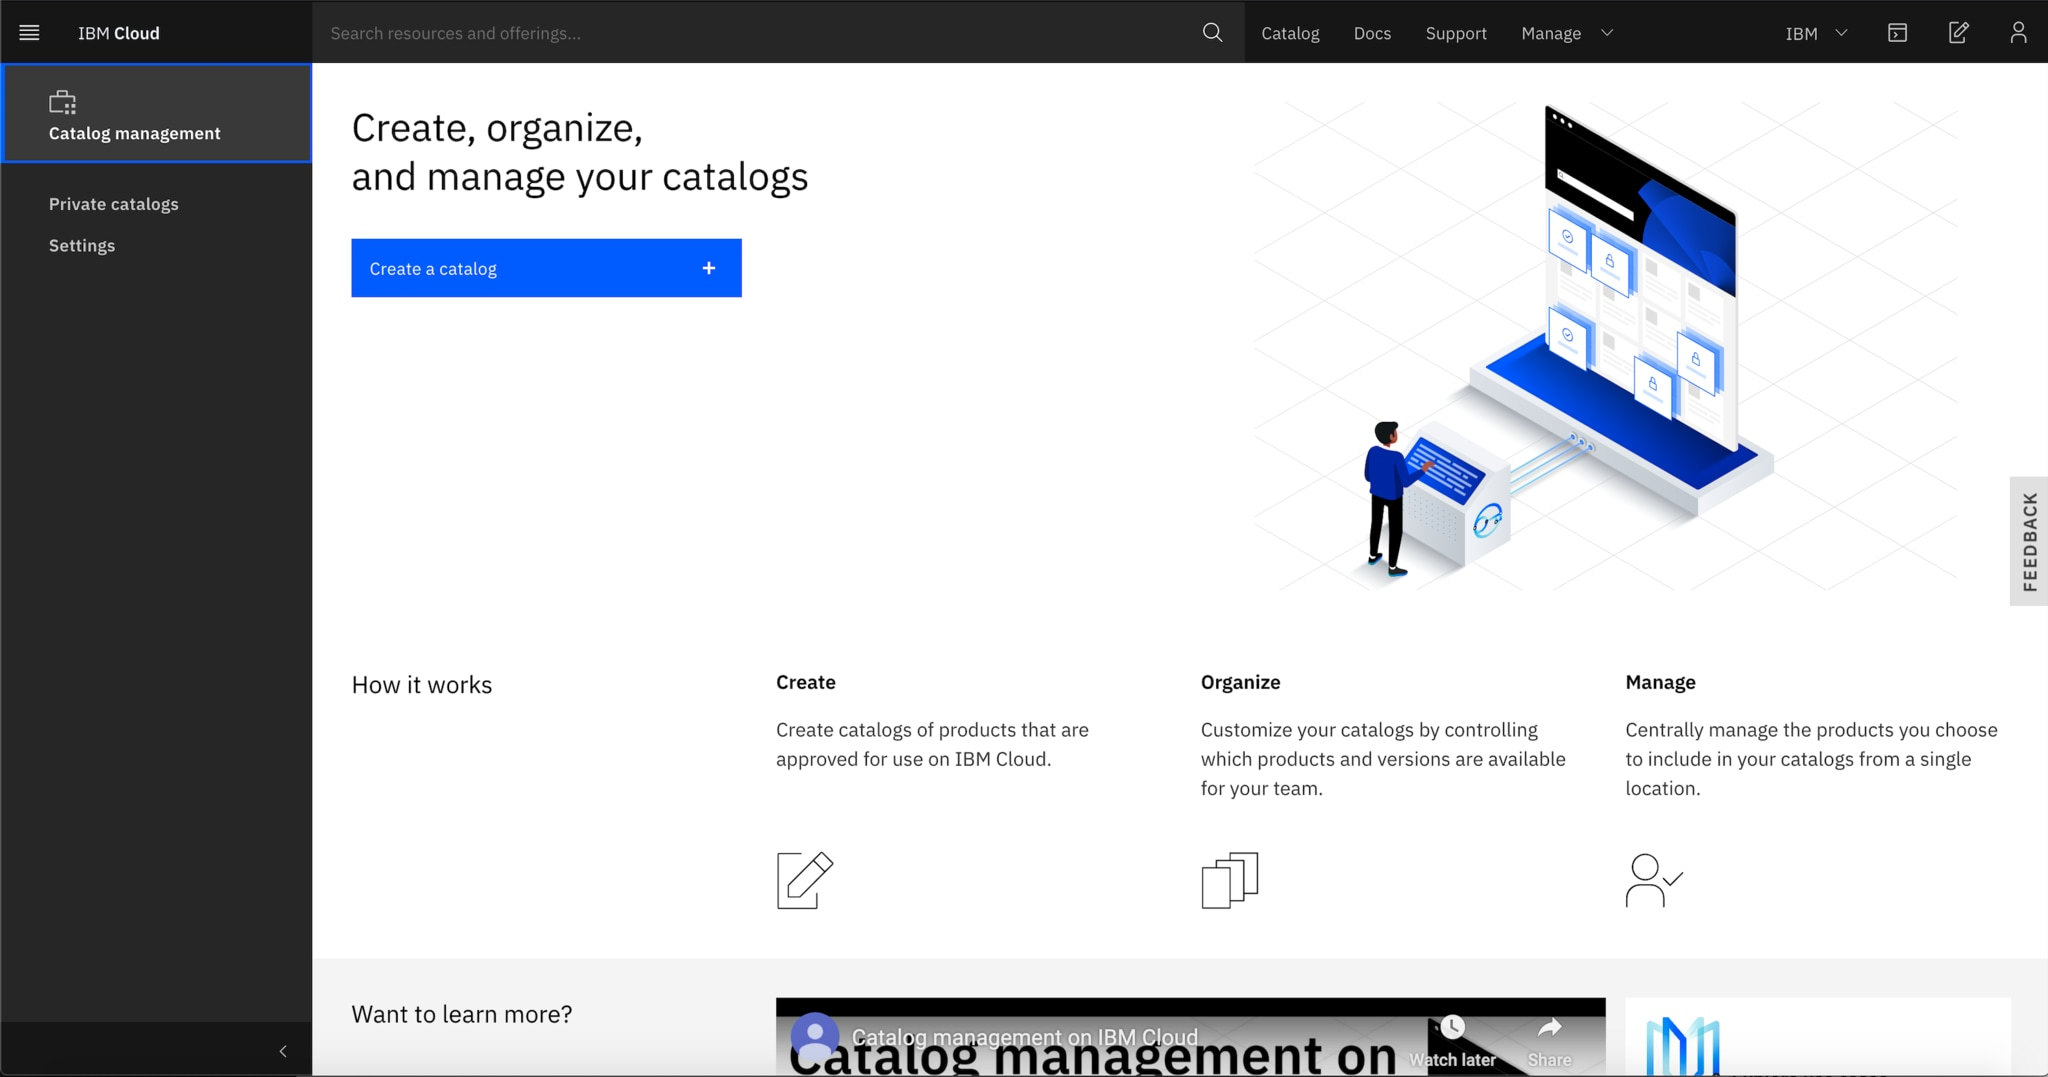 From the Settings page, you can control what products users can view and access in the IBM Cloud catalog. You can also create a private catalog and further scope what's available to users with access to your private catalog.